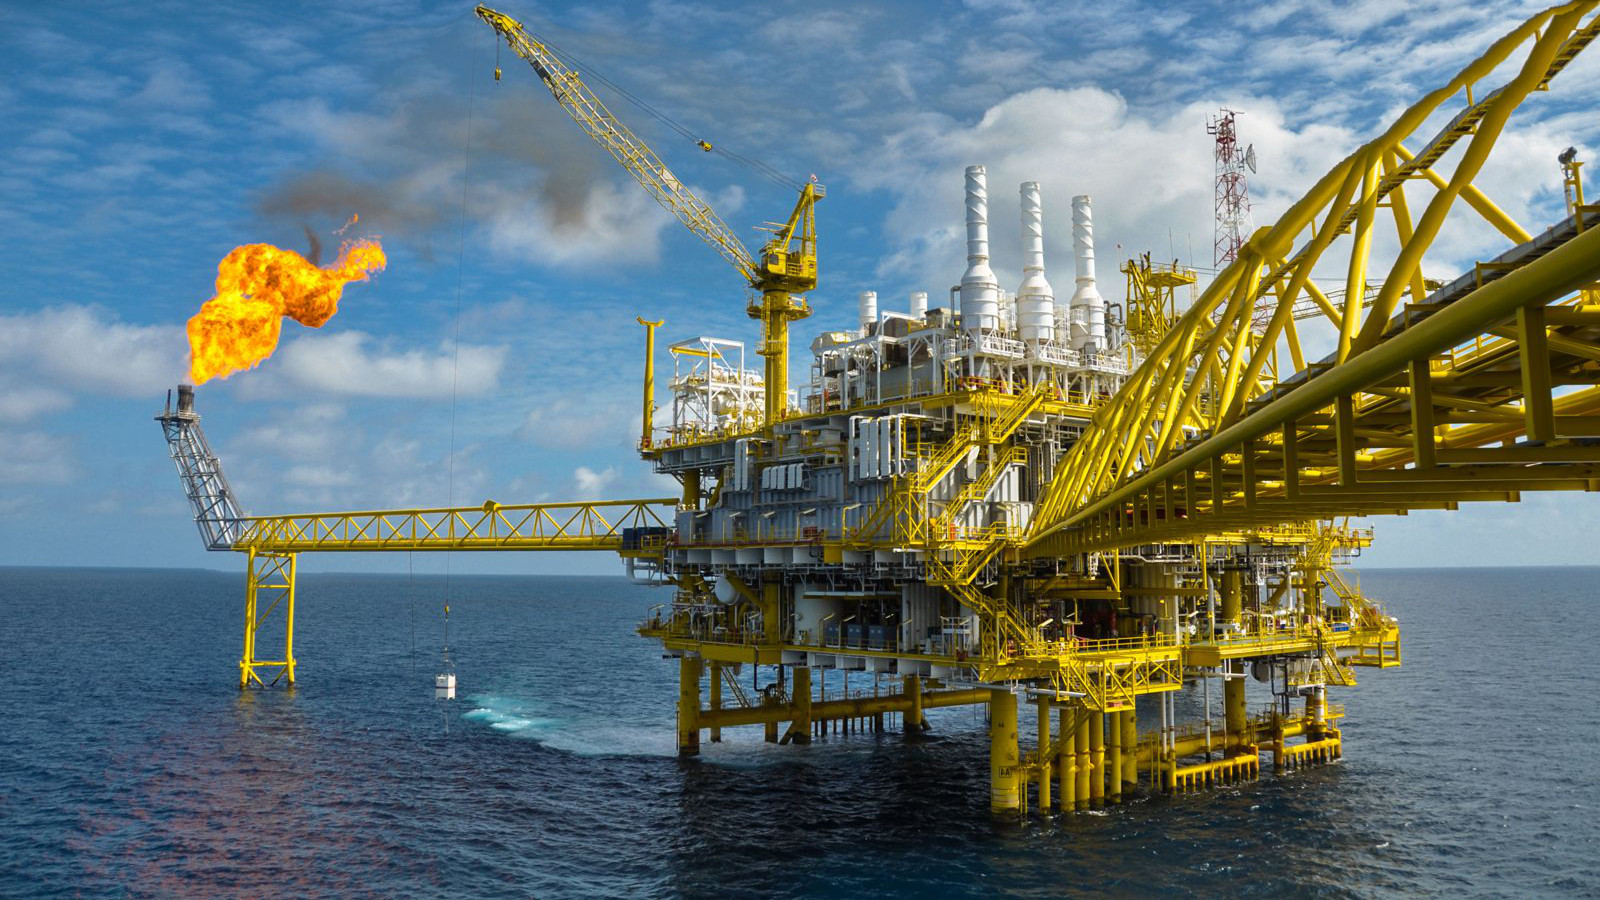 OIL RIG 1600 x 900